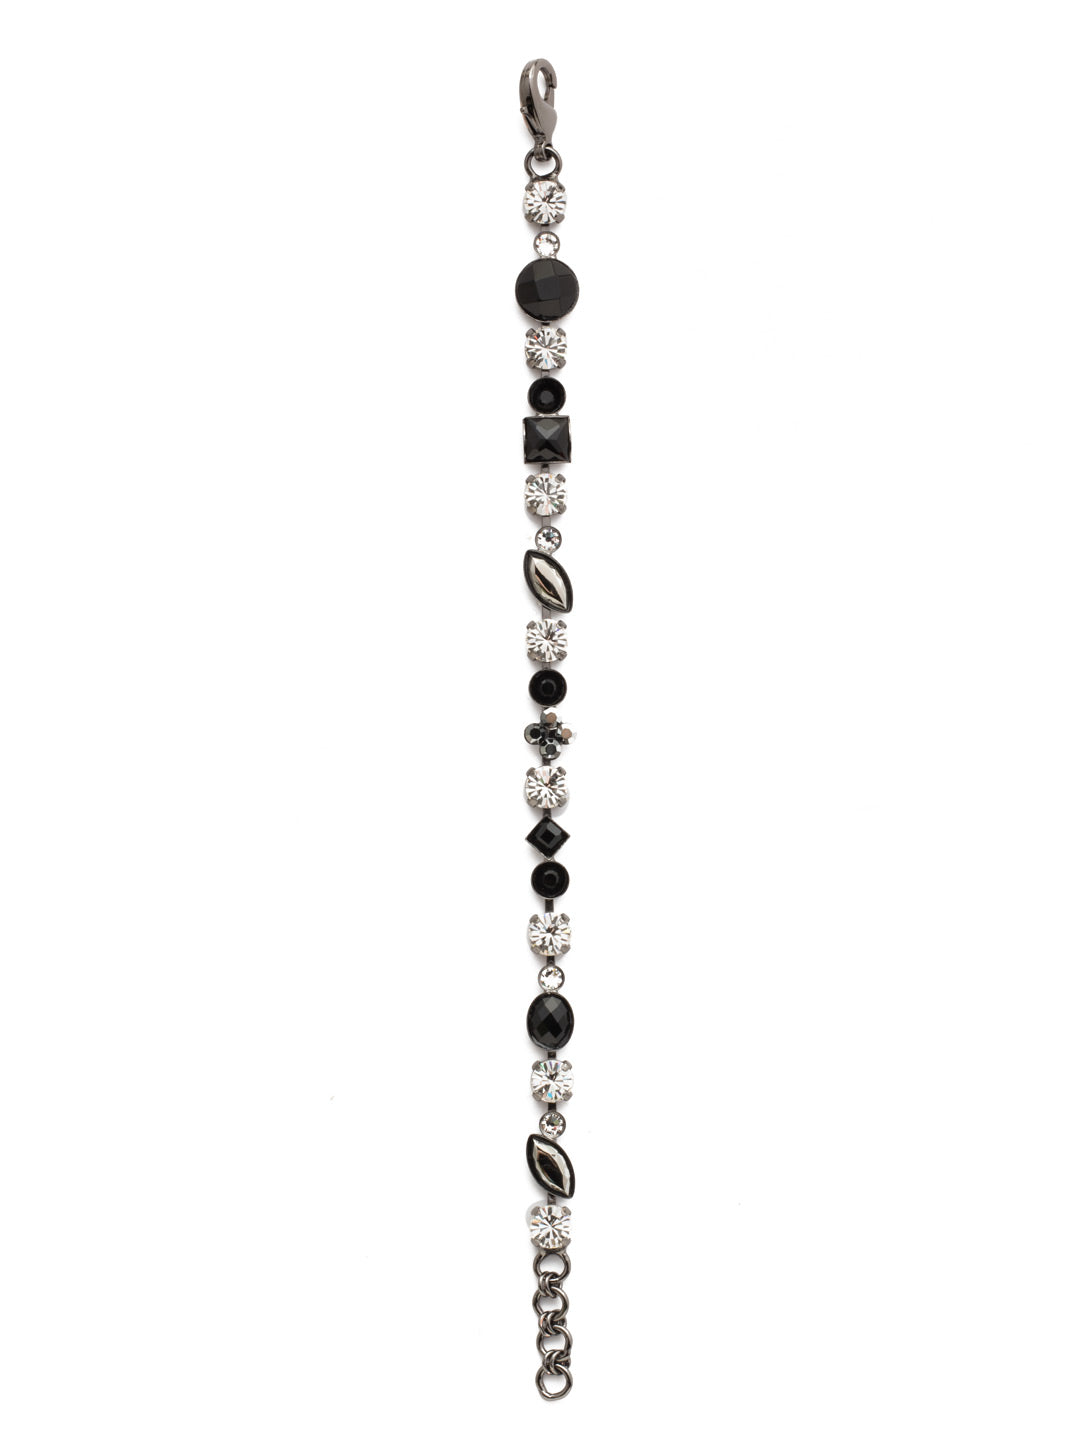 Crystal and Cabochon Tennis Bracelet - BAQ3GMMMO